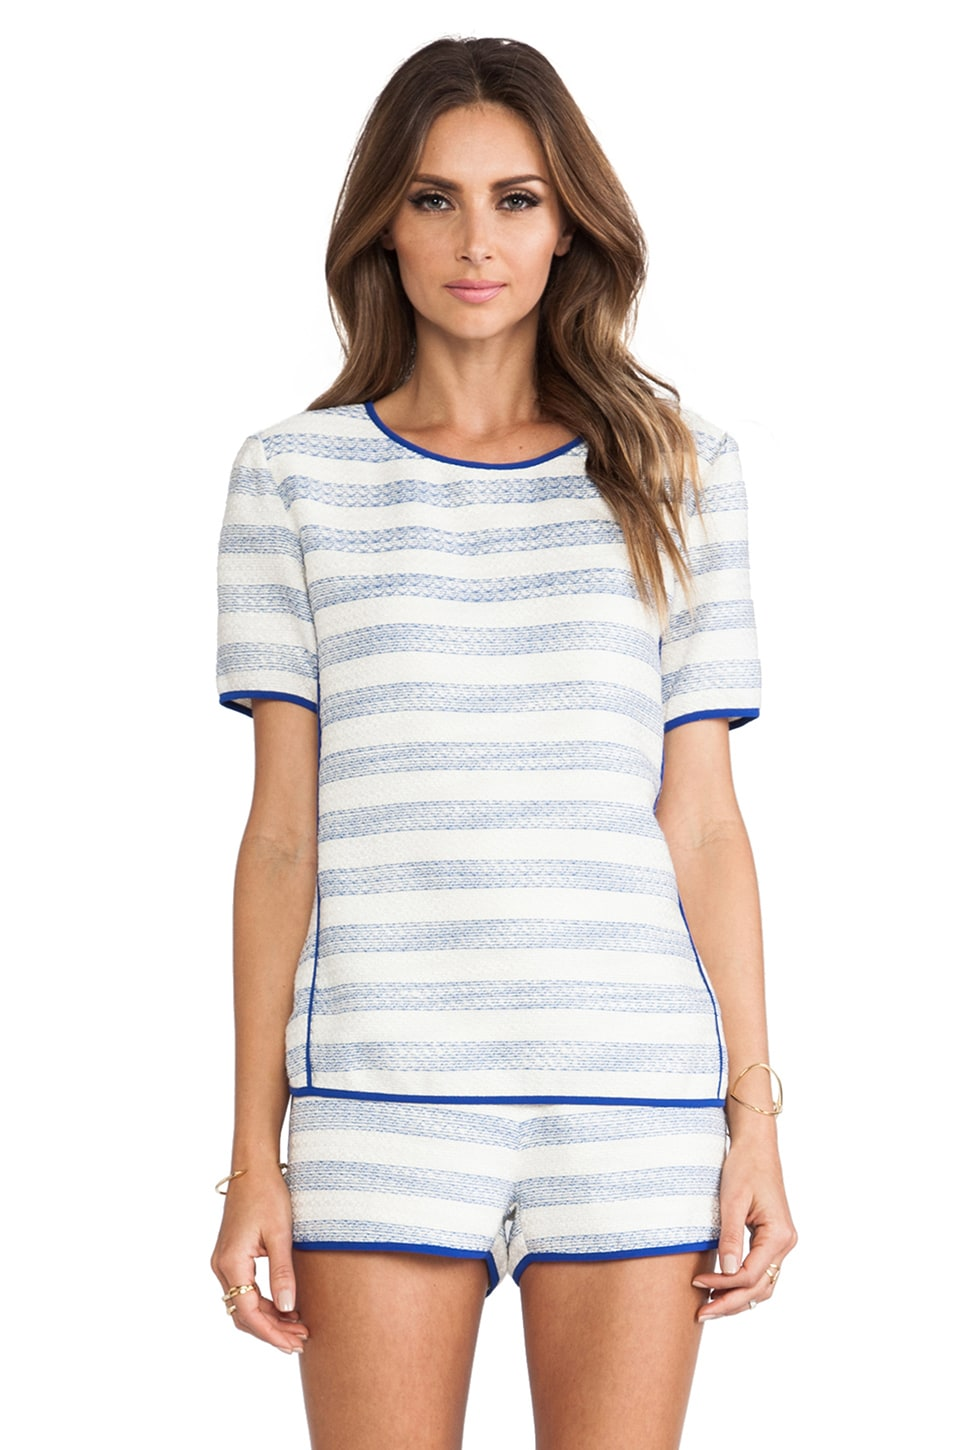 Line & Dot Contrast Binding Top in Sky Stripe